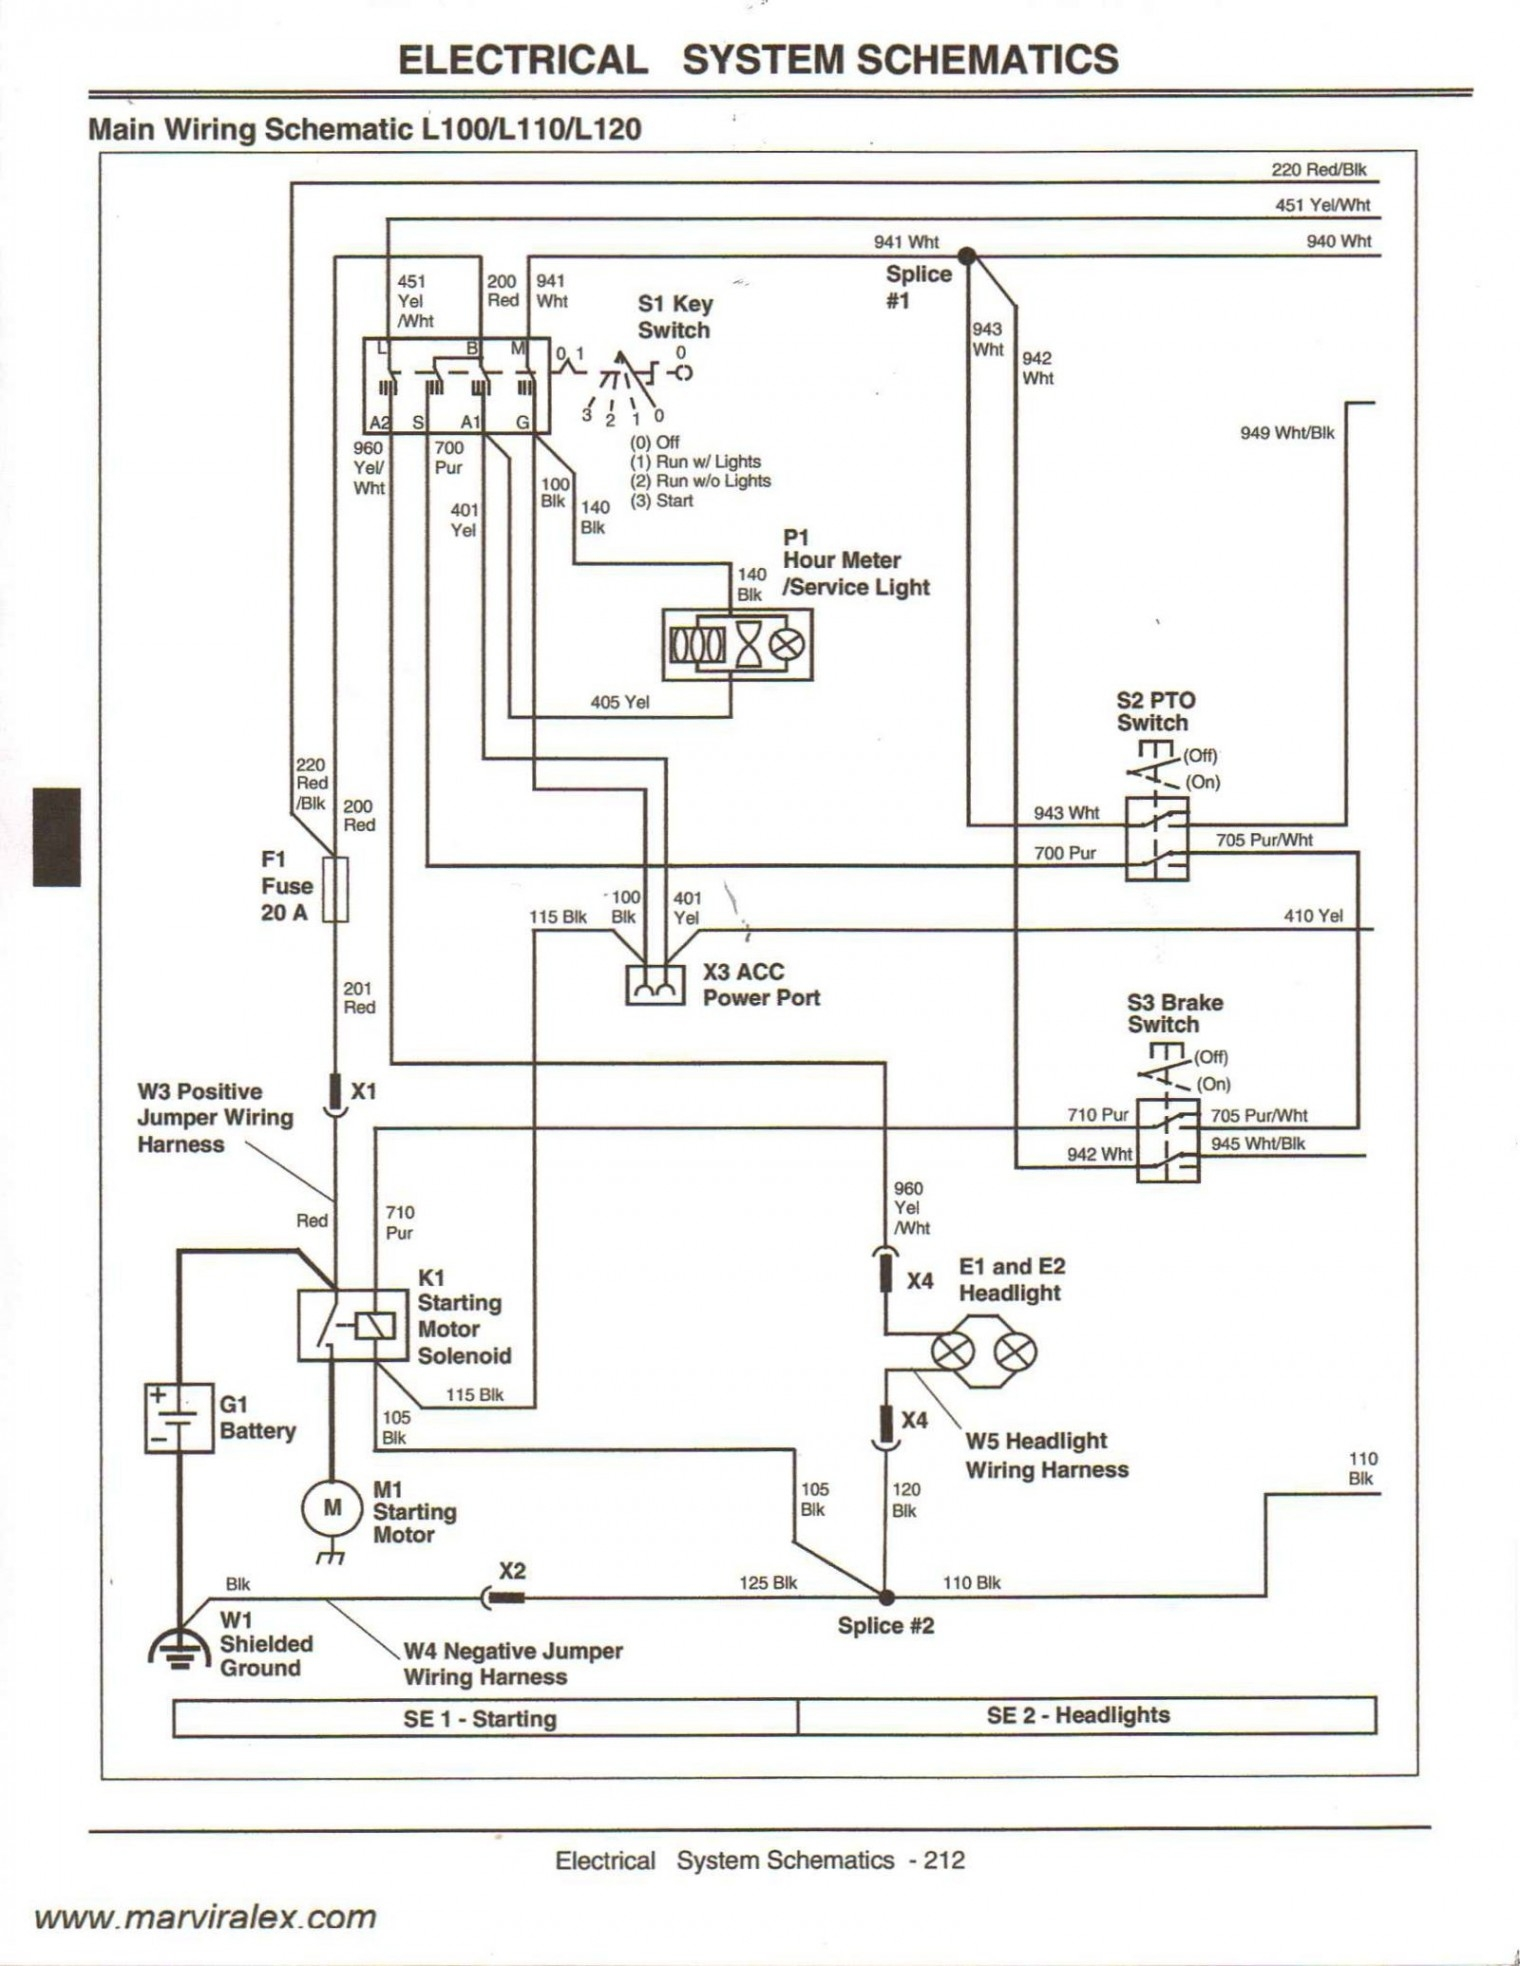 john deere 27d wiring harness diagram john deere lx172 wiring harness diagram john deere l130 wiring diagram | free wiring diagram #3